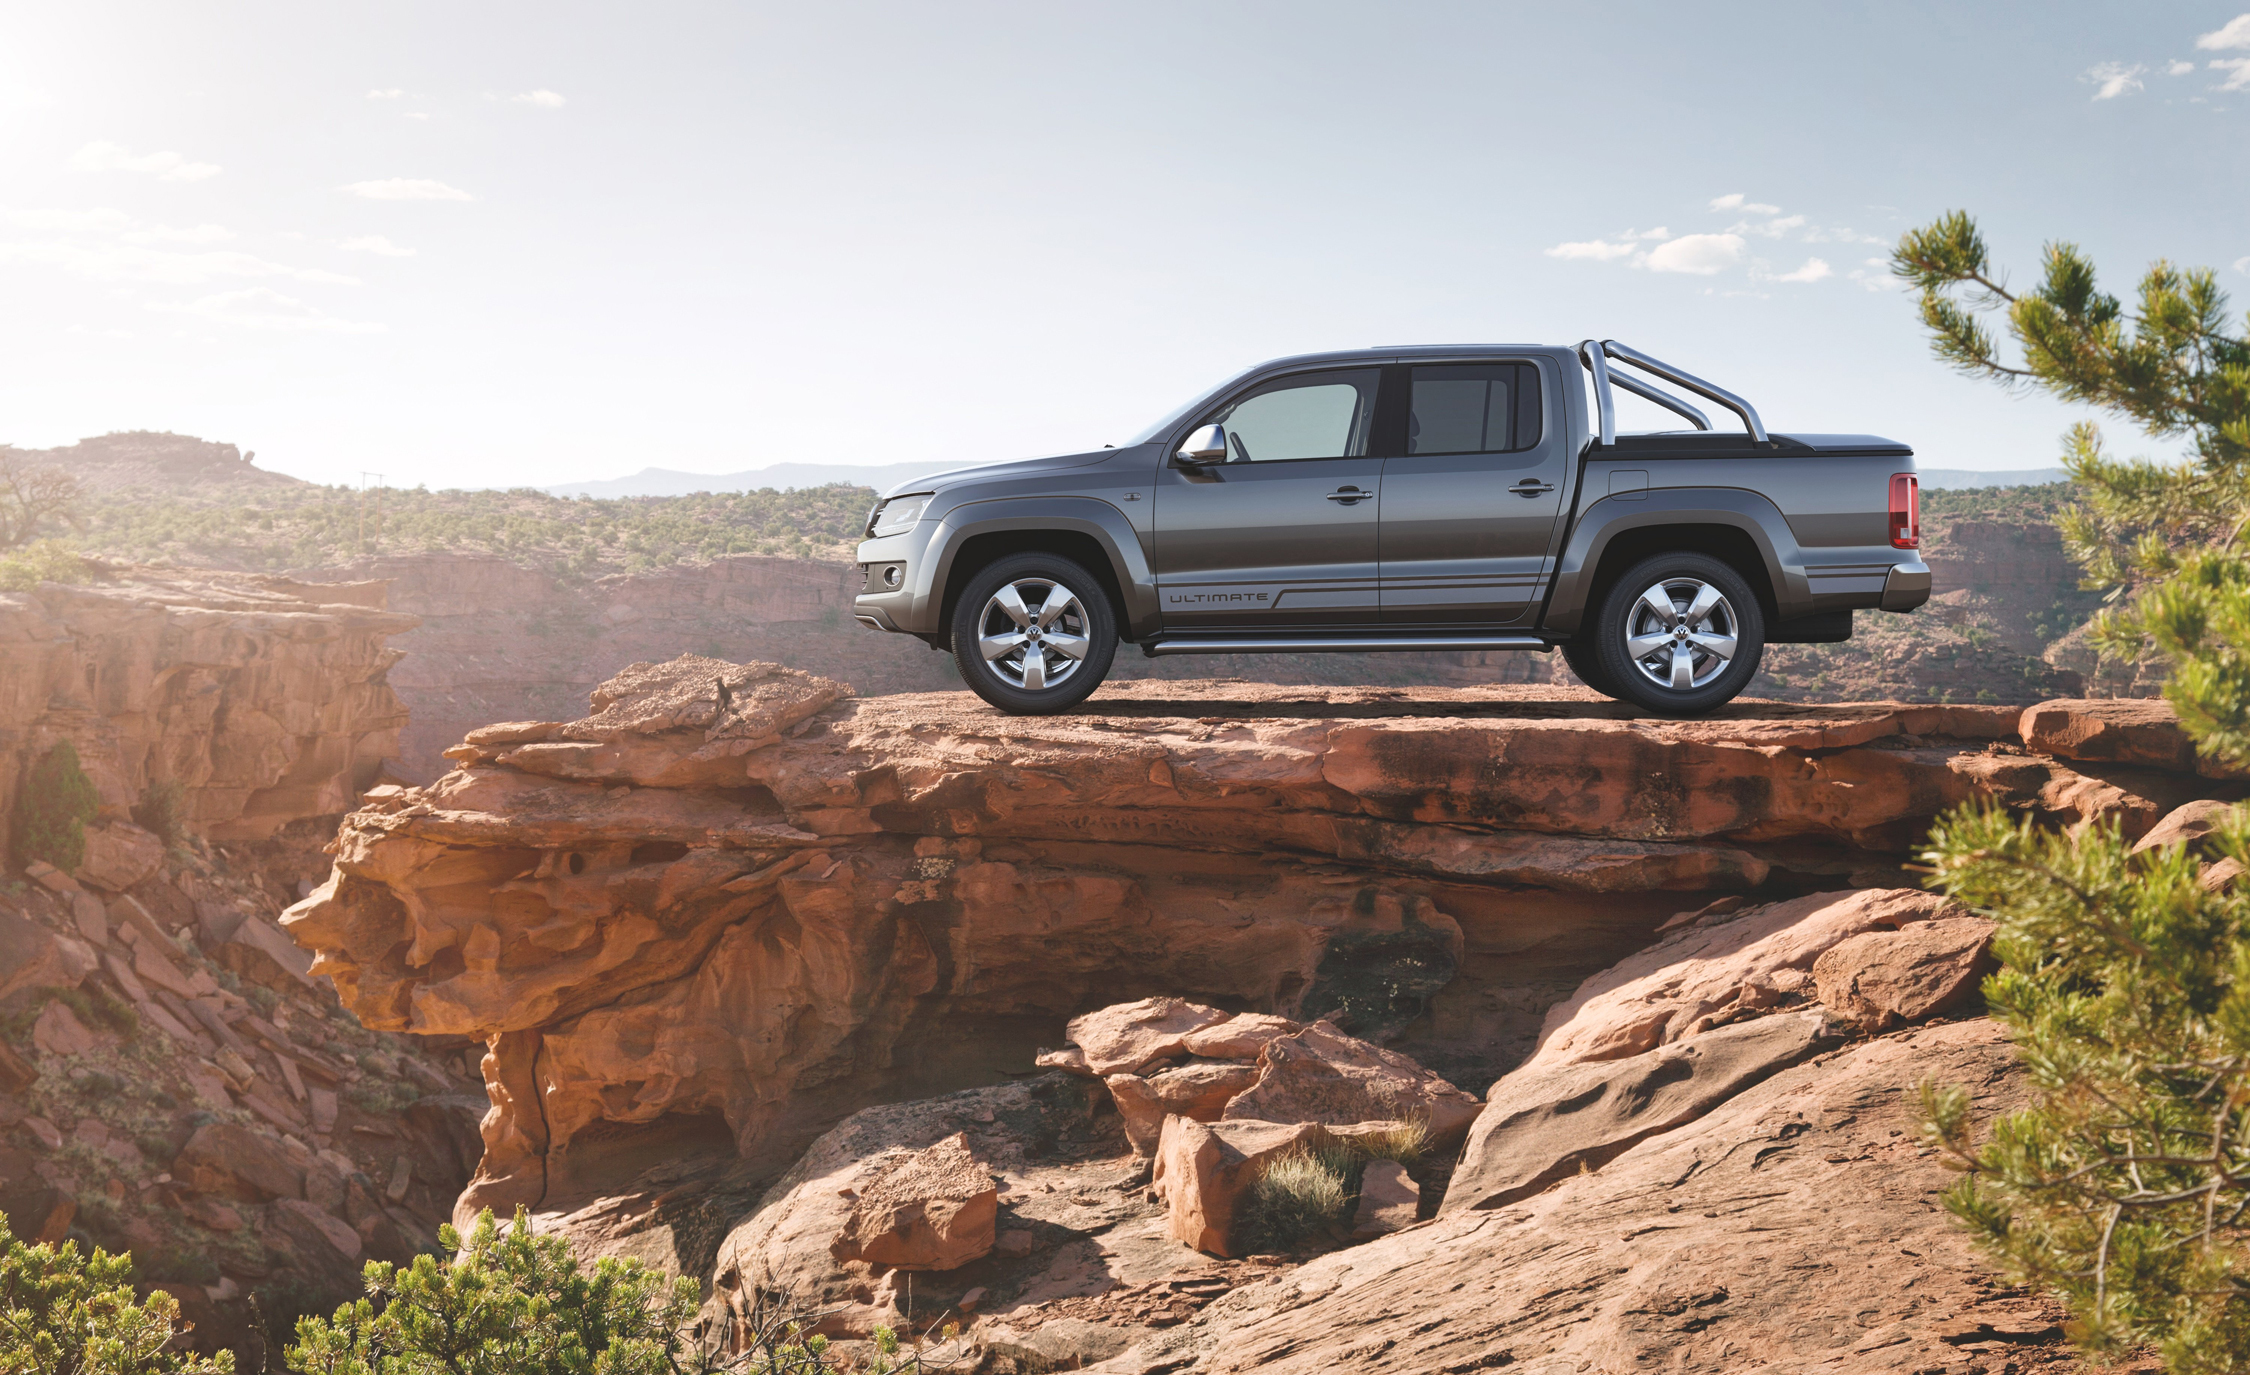 Volkswagen Amarok Wallpapers HD